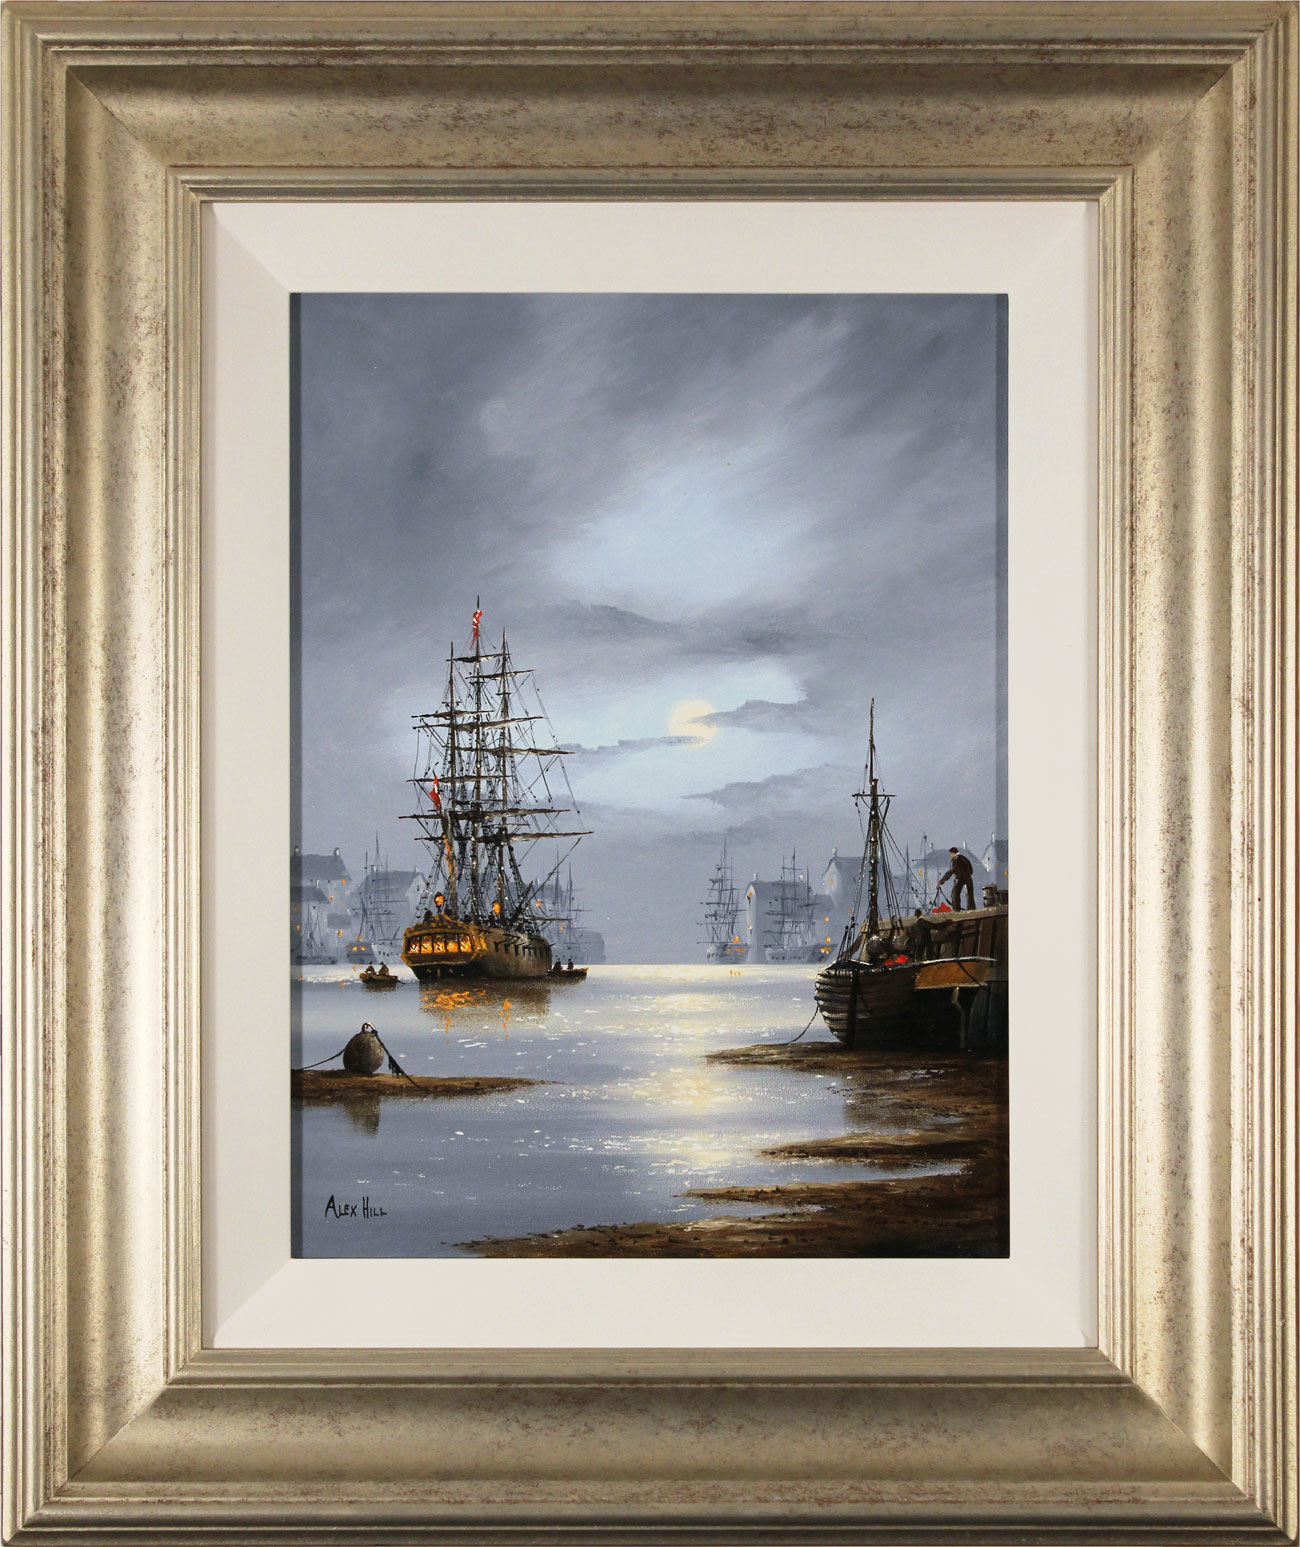 Alex Hill, Original oil painting on panel, Moonlight Mooring Click to enlarge